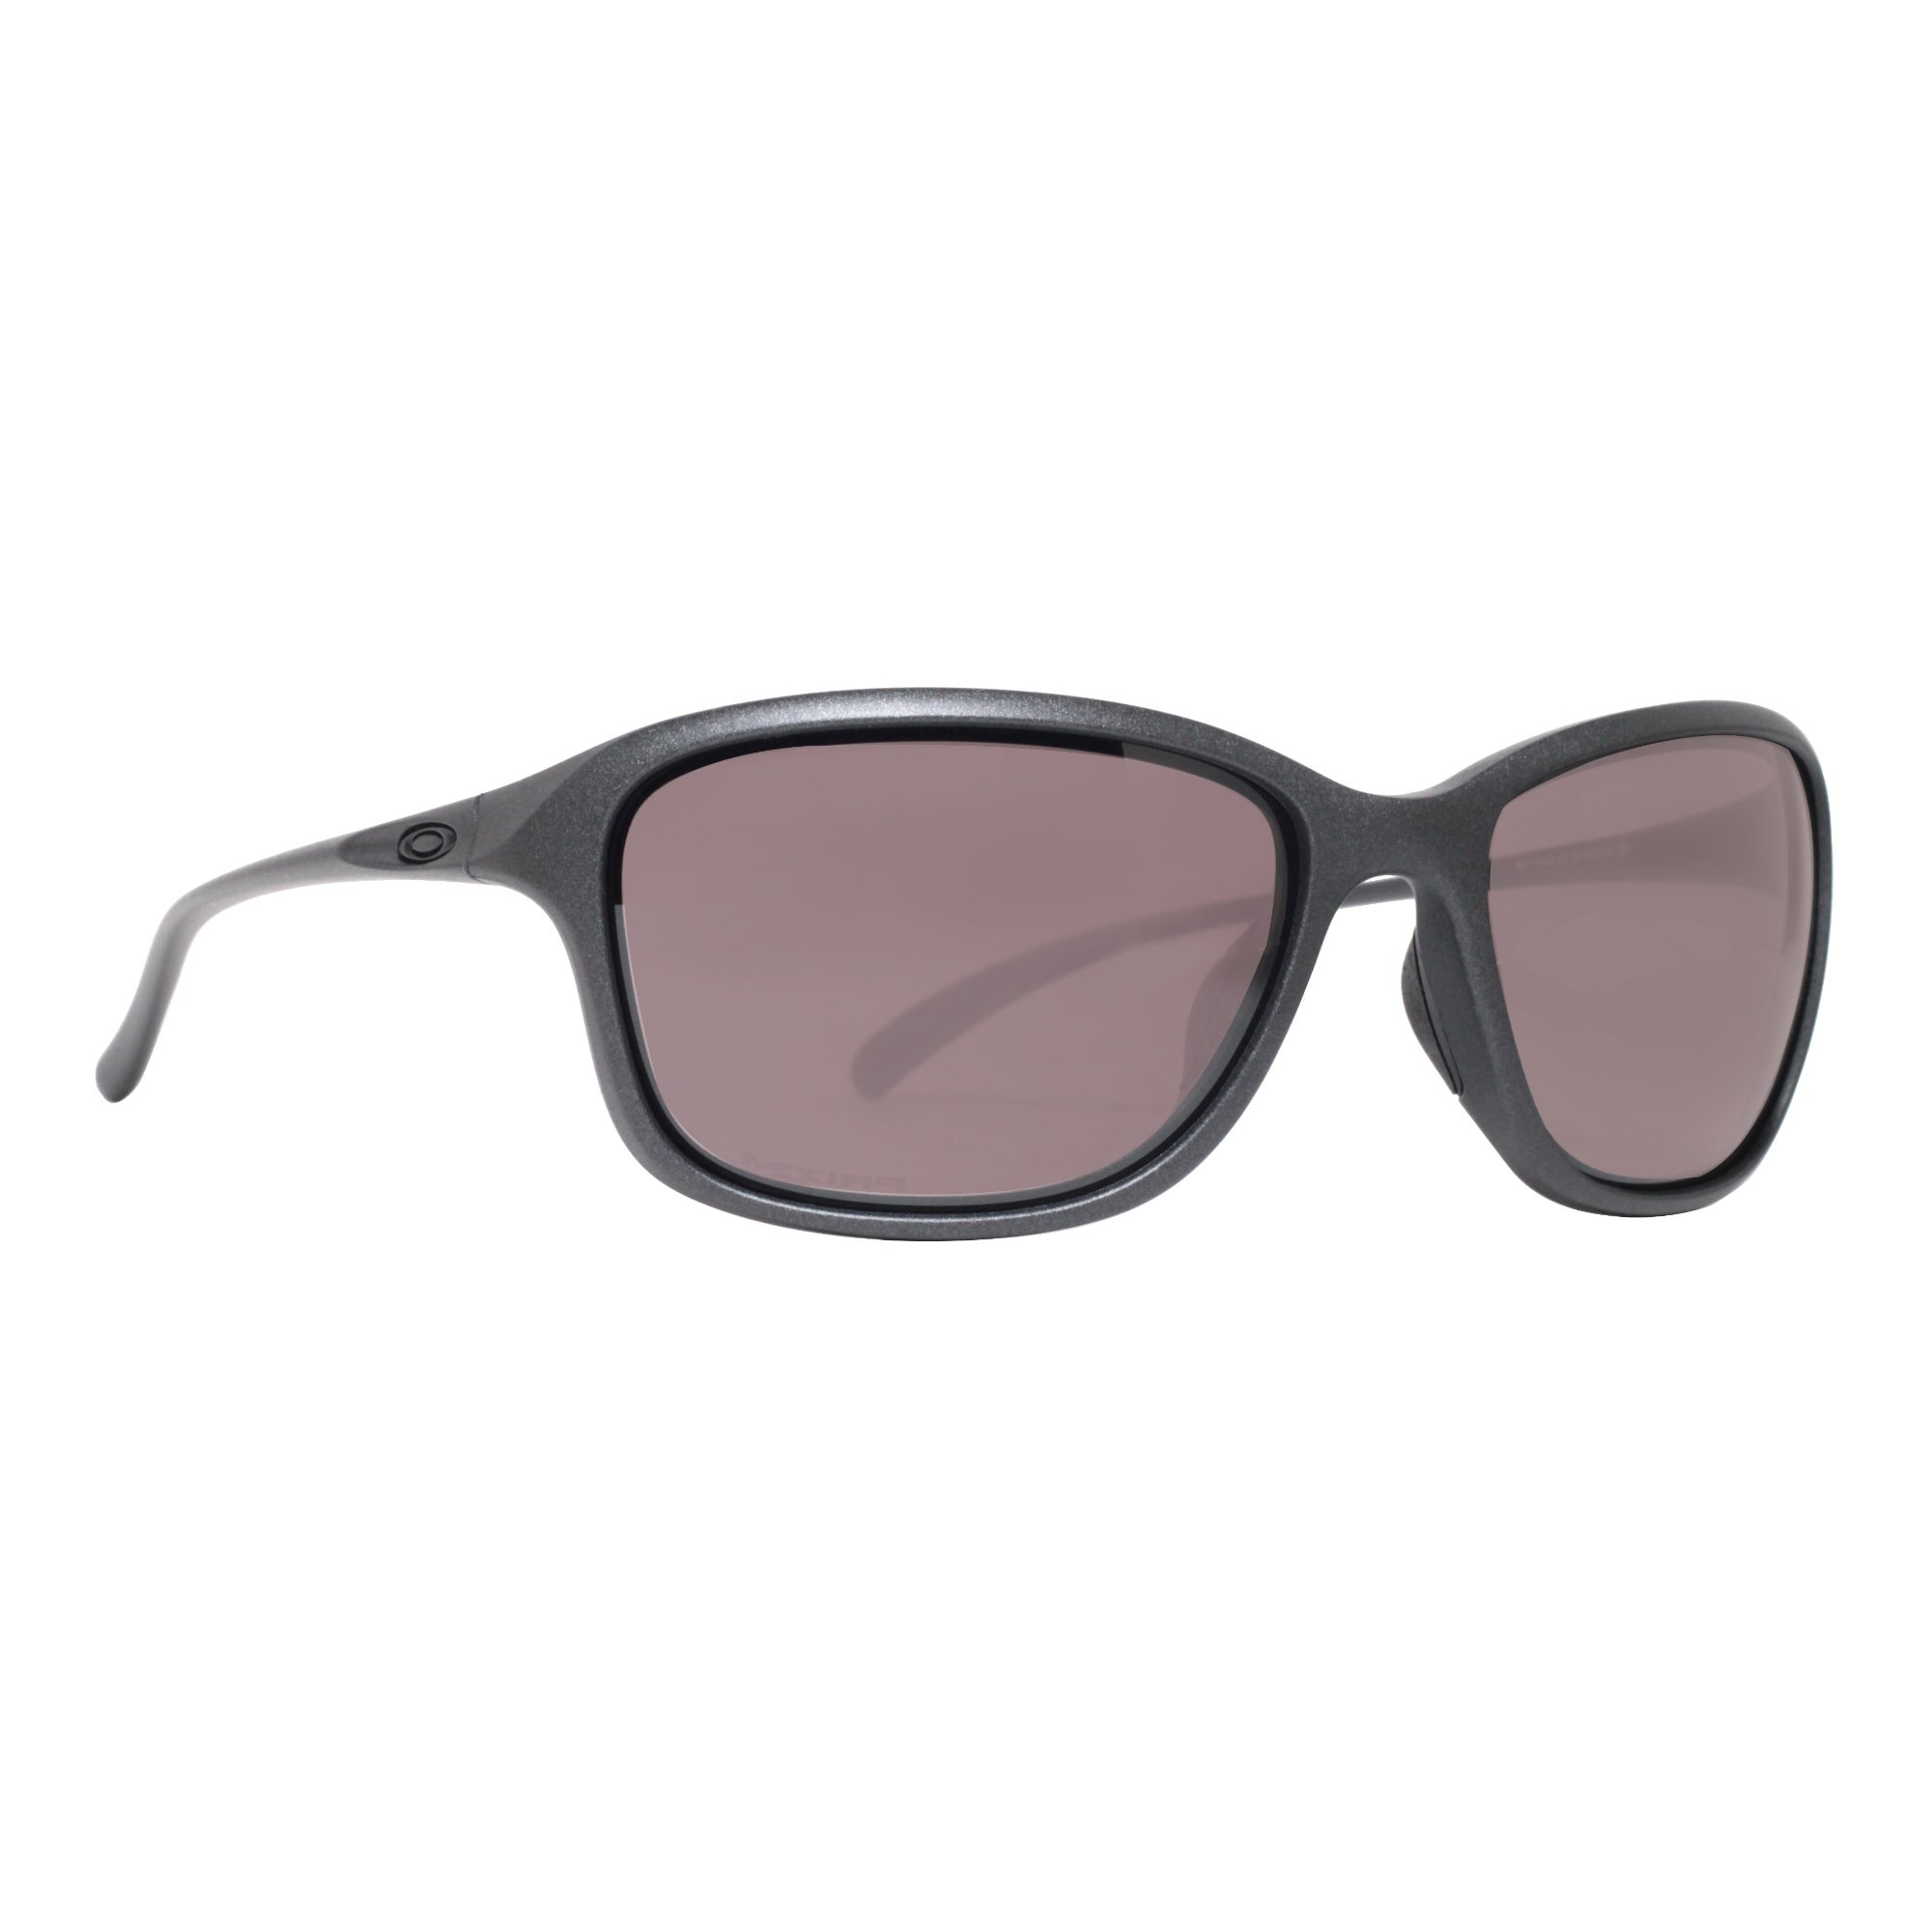 5a76ebb353bd2 ... germany shop oakley shes unstoppable oo9297 05 steel gray prizm daily  polarized sunglasses steel gray 59mm